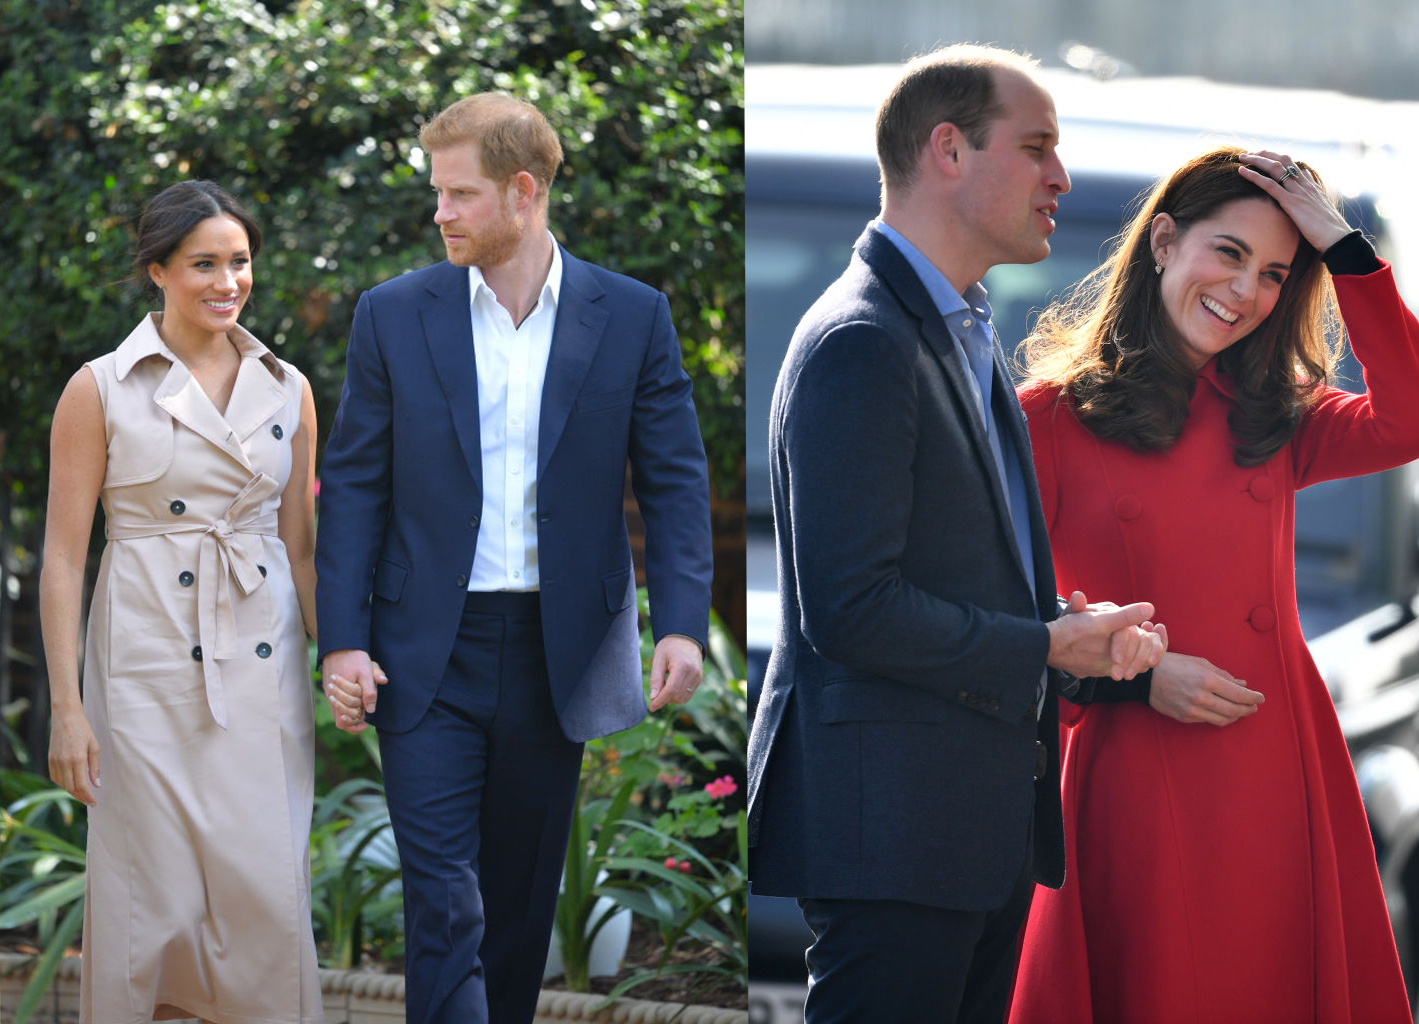 Public Chooses to Respect Royal Couple Prince Harry and Meghan More than Prince William and Kate